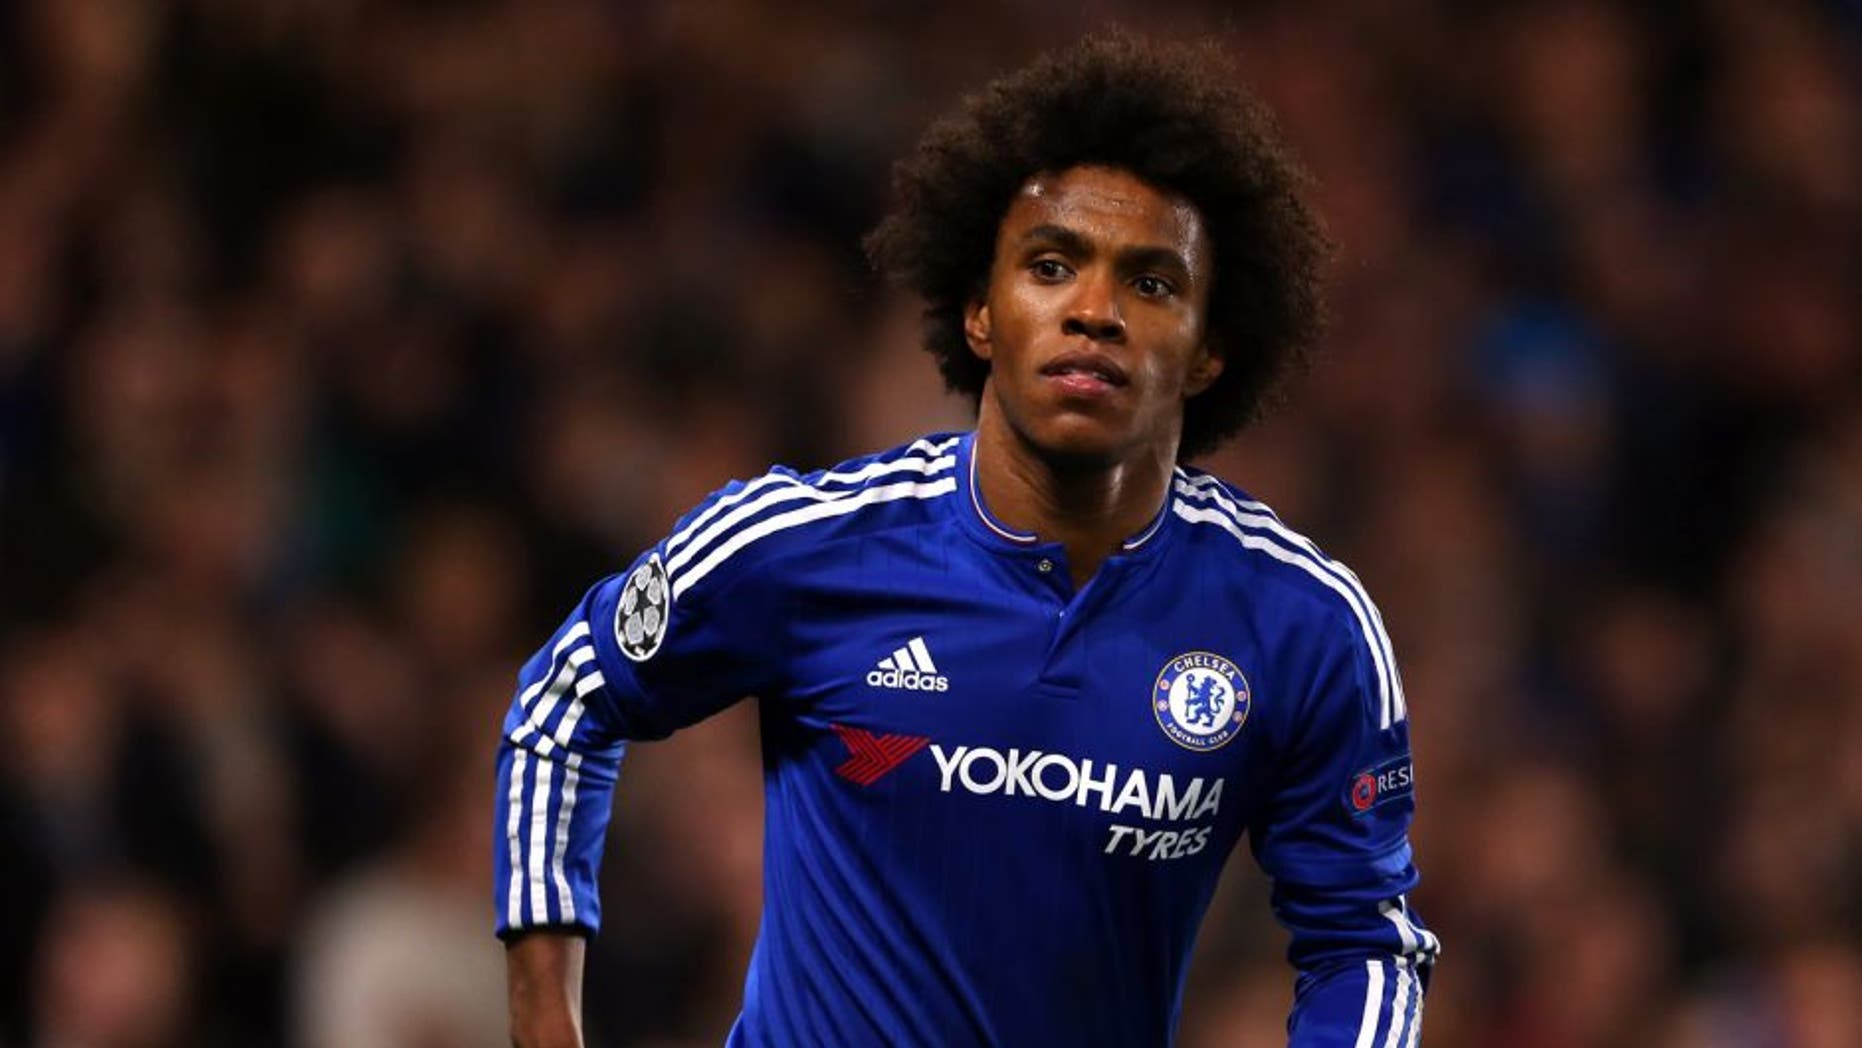 LONDON, ENGLAND - NOVEMBER 04: Willian of Chelsea during the UEFA Champions League Group G match between Chelsea and Dynamo Kyiv at Stamford Bridge on November 4, 2015 in London, United Kingdom. (Photo by Catherine Ivill - AMA/Getty Images)